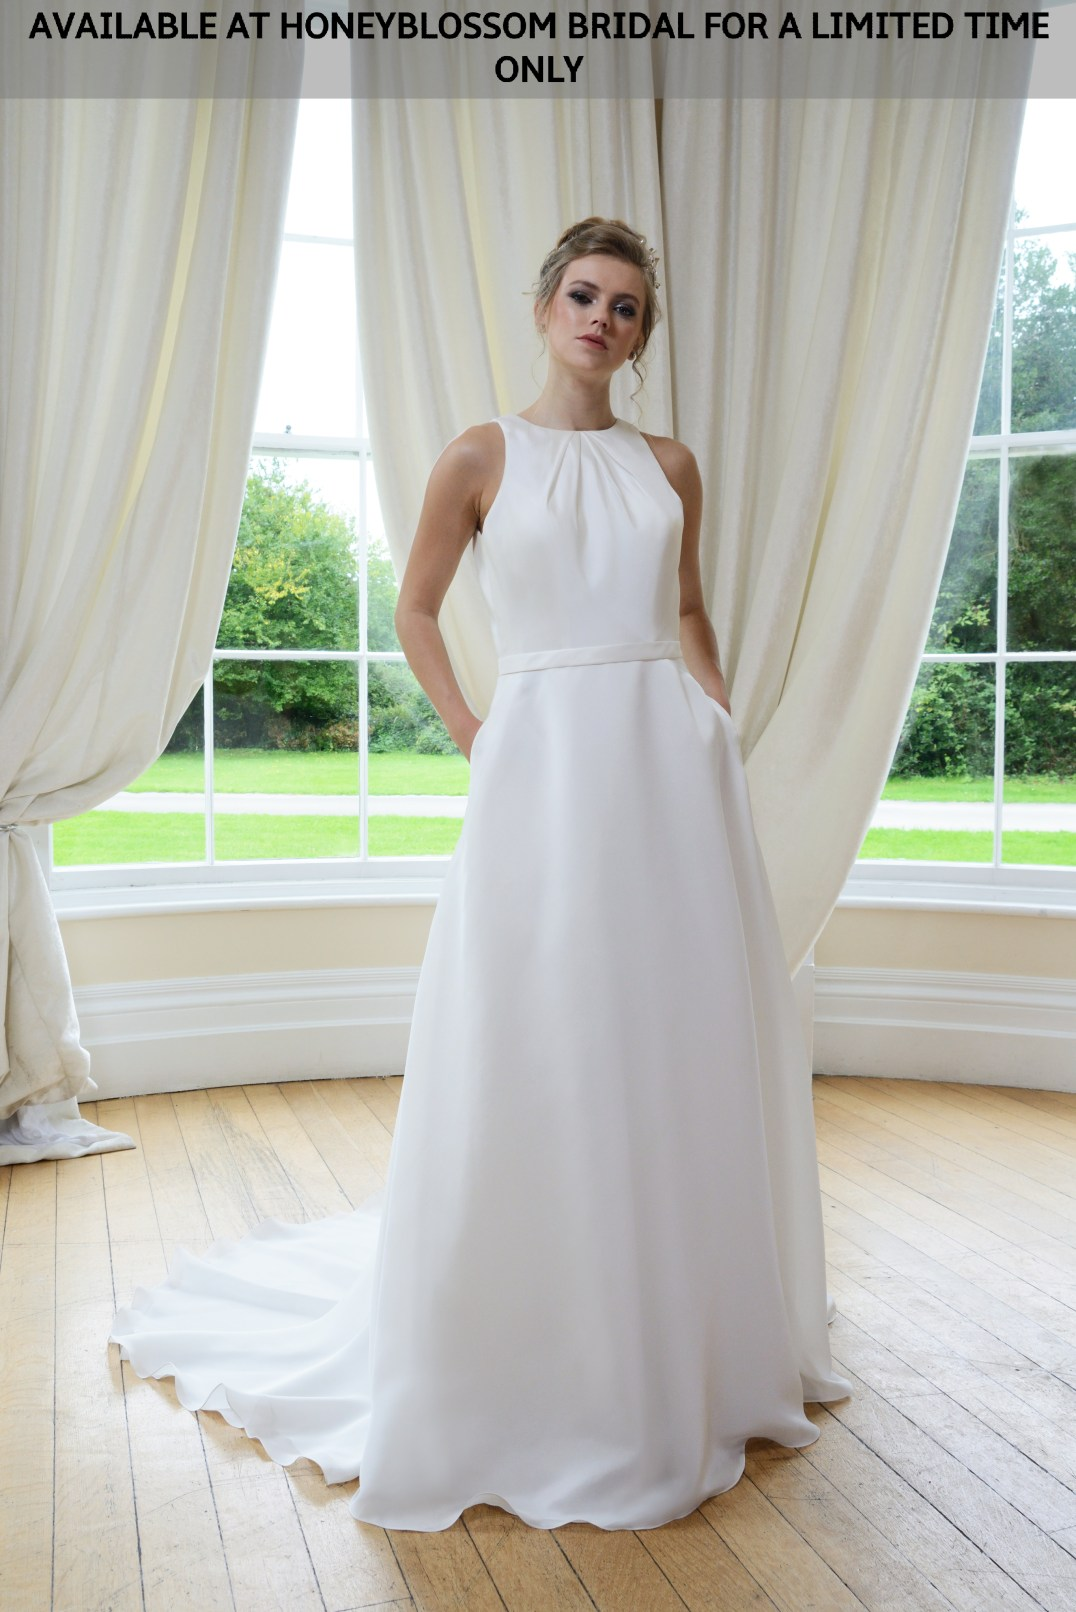 GAIA Cate wedding dress - Available at Honeyblossom Bridal for a limited time only